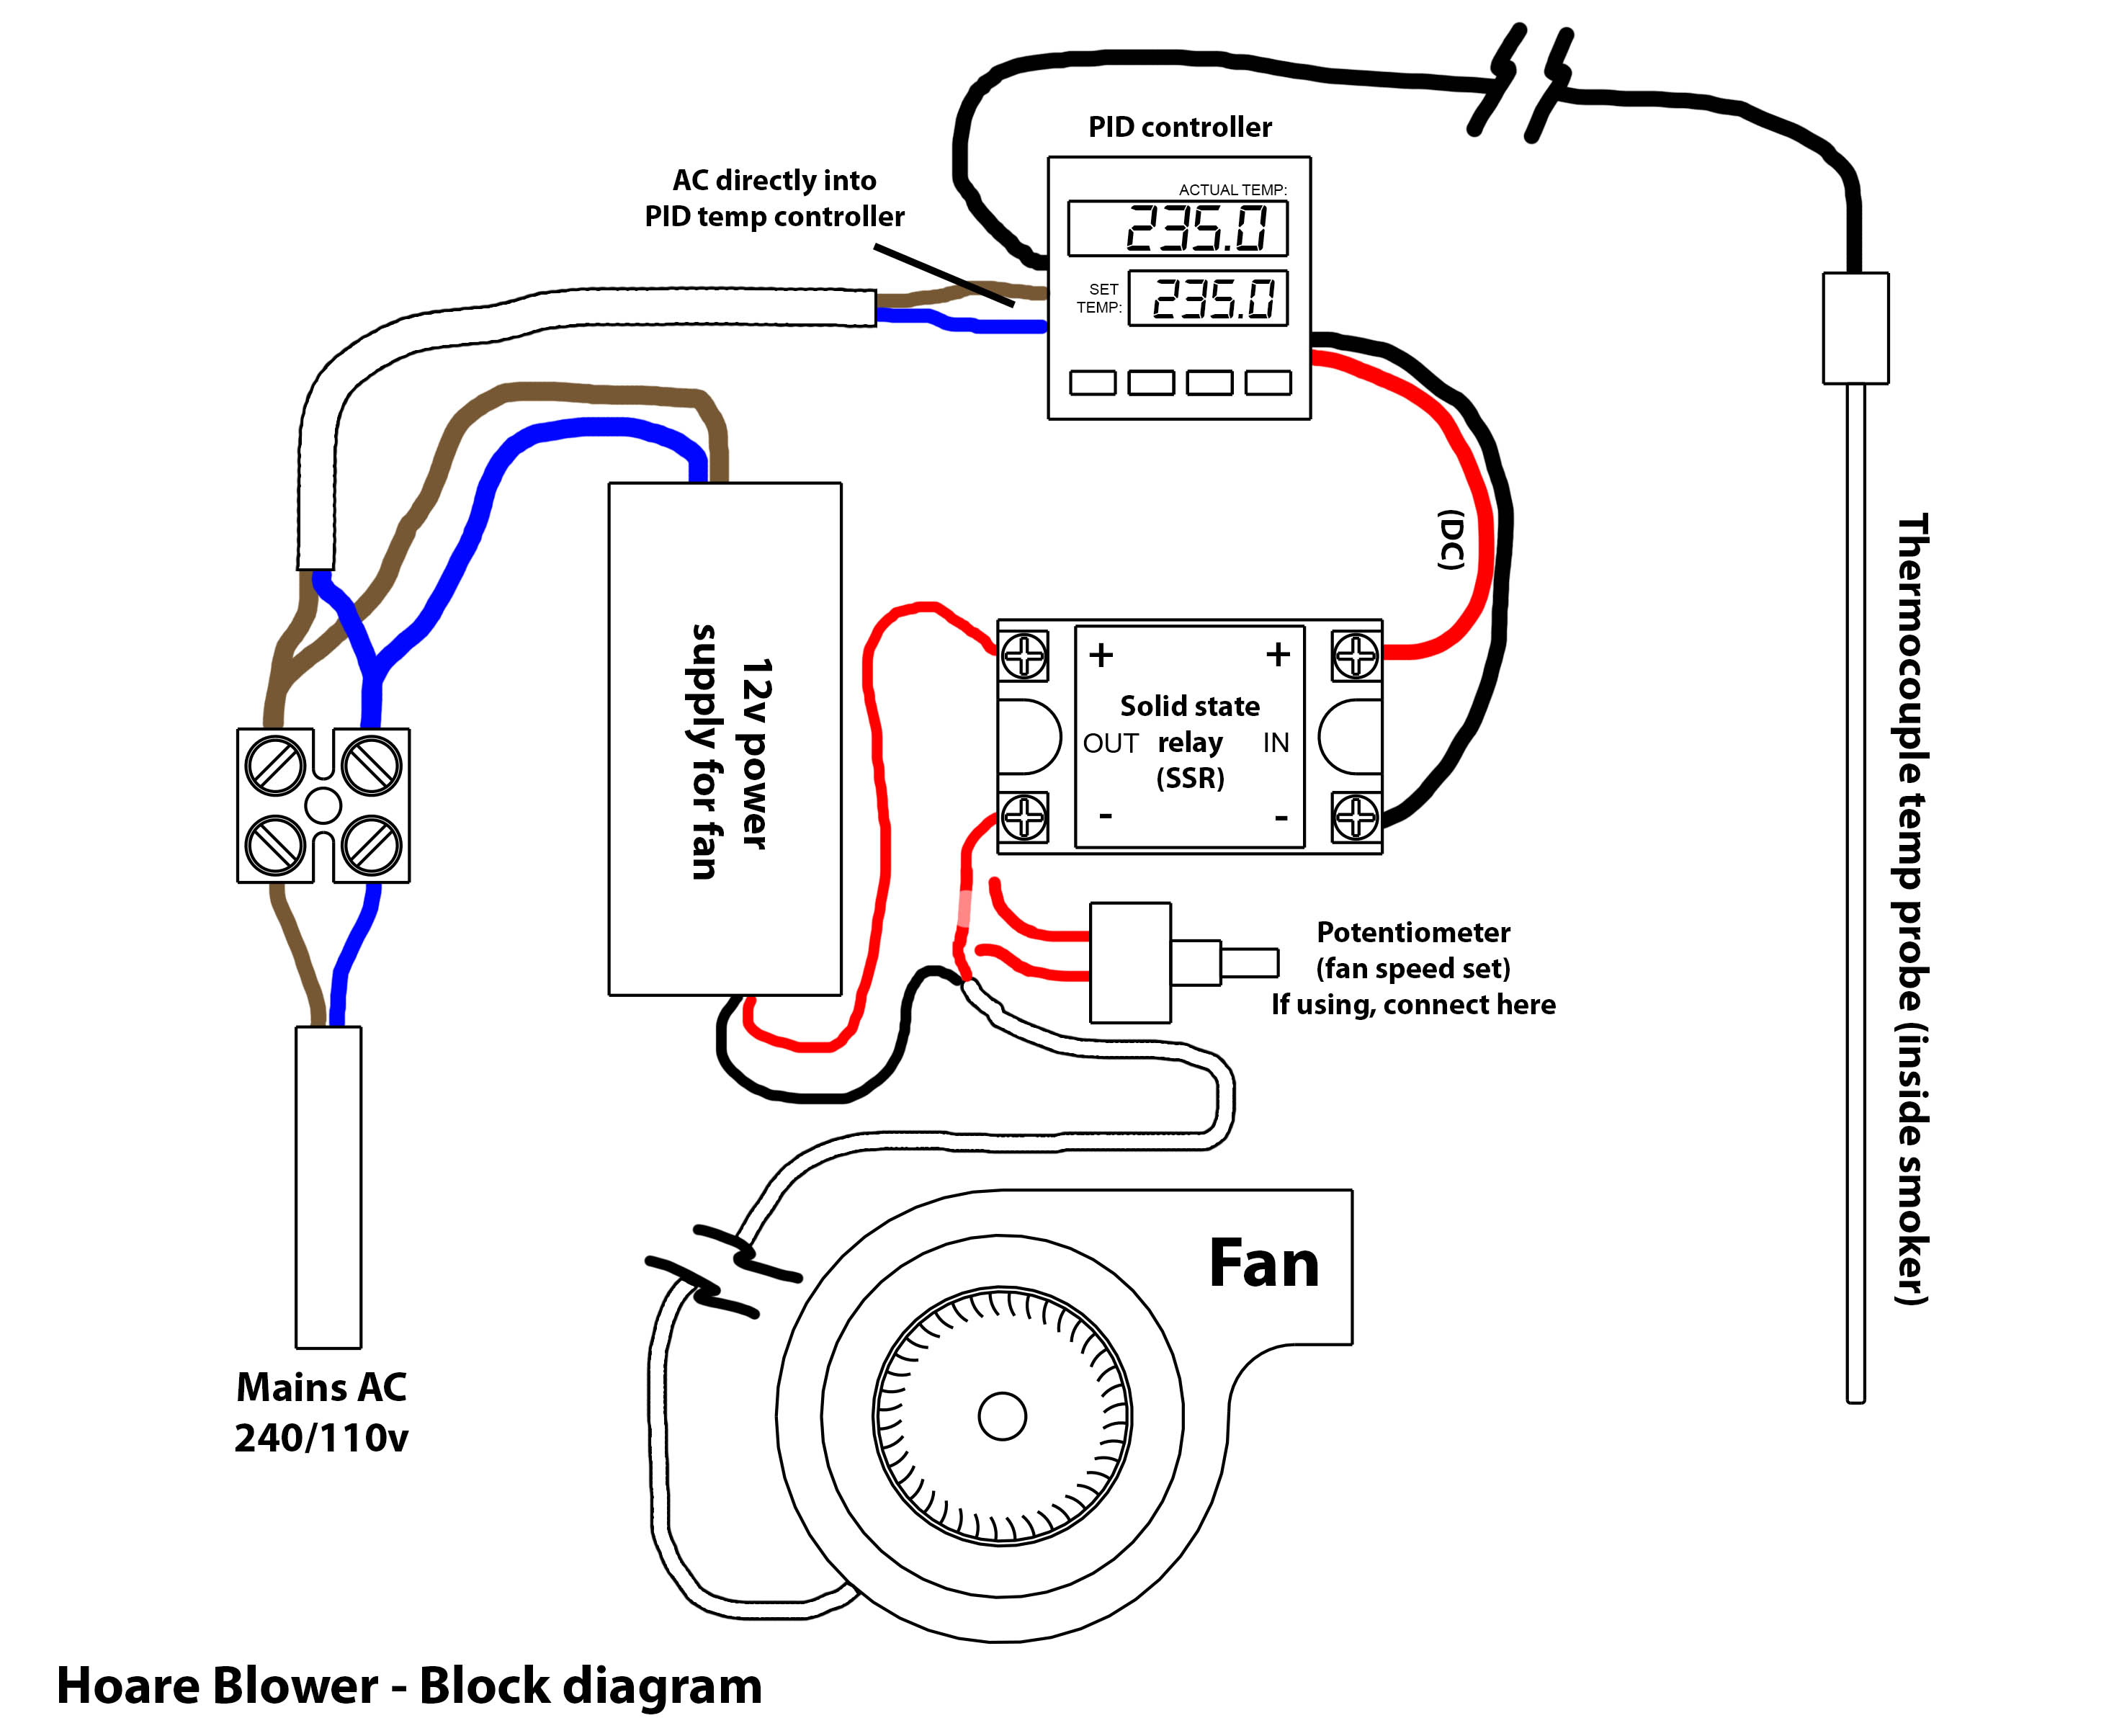 Ebm Papst Fan Wiring Diagram : 28 Wiring Diagram Images